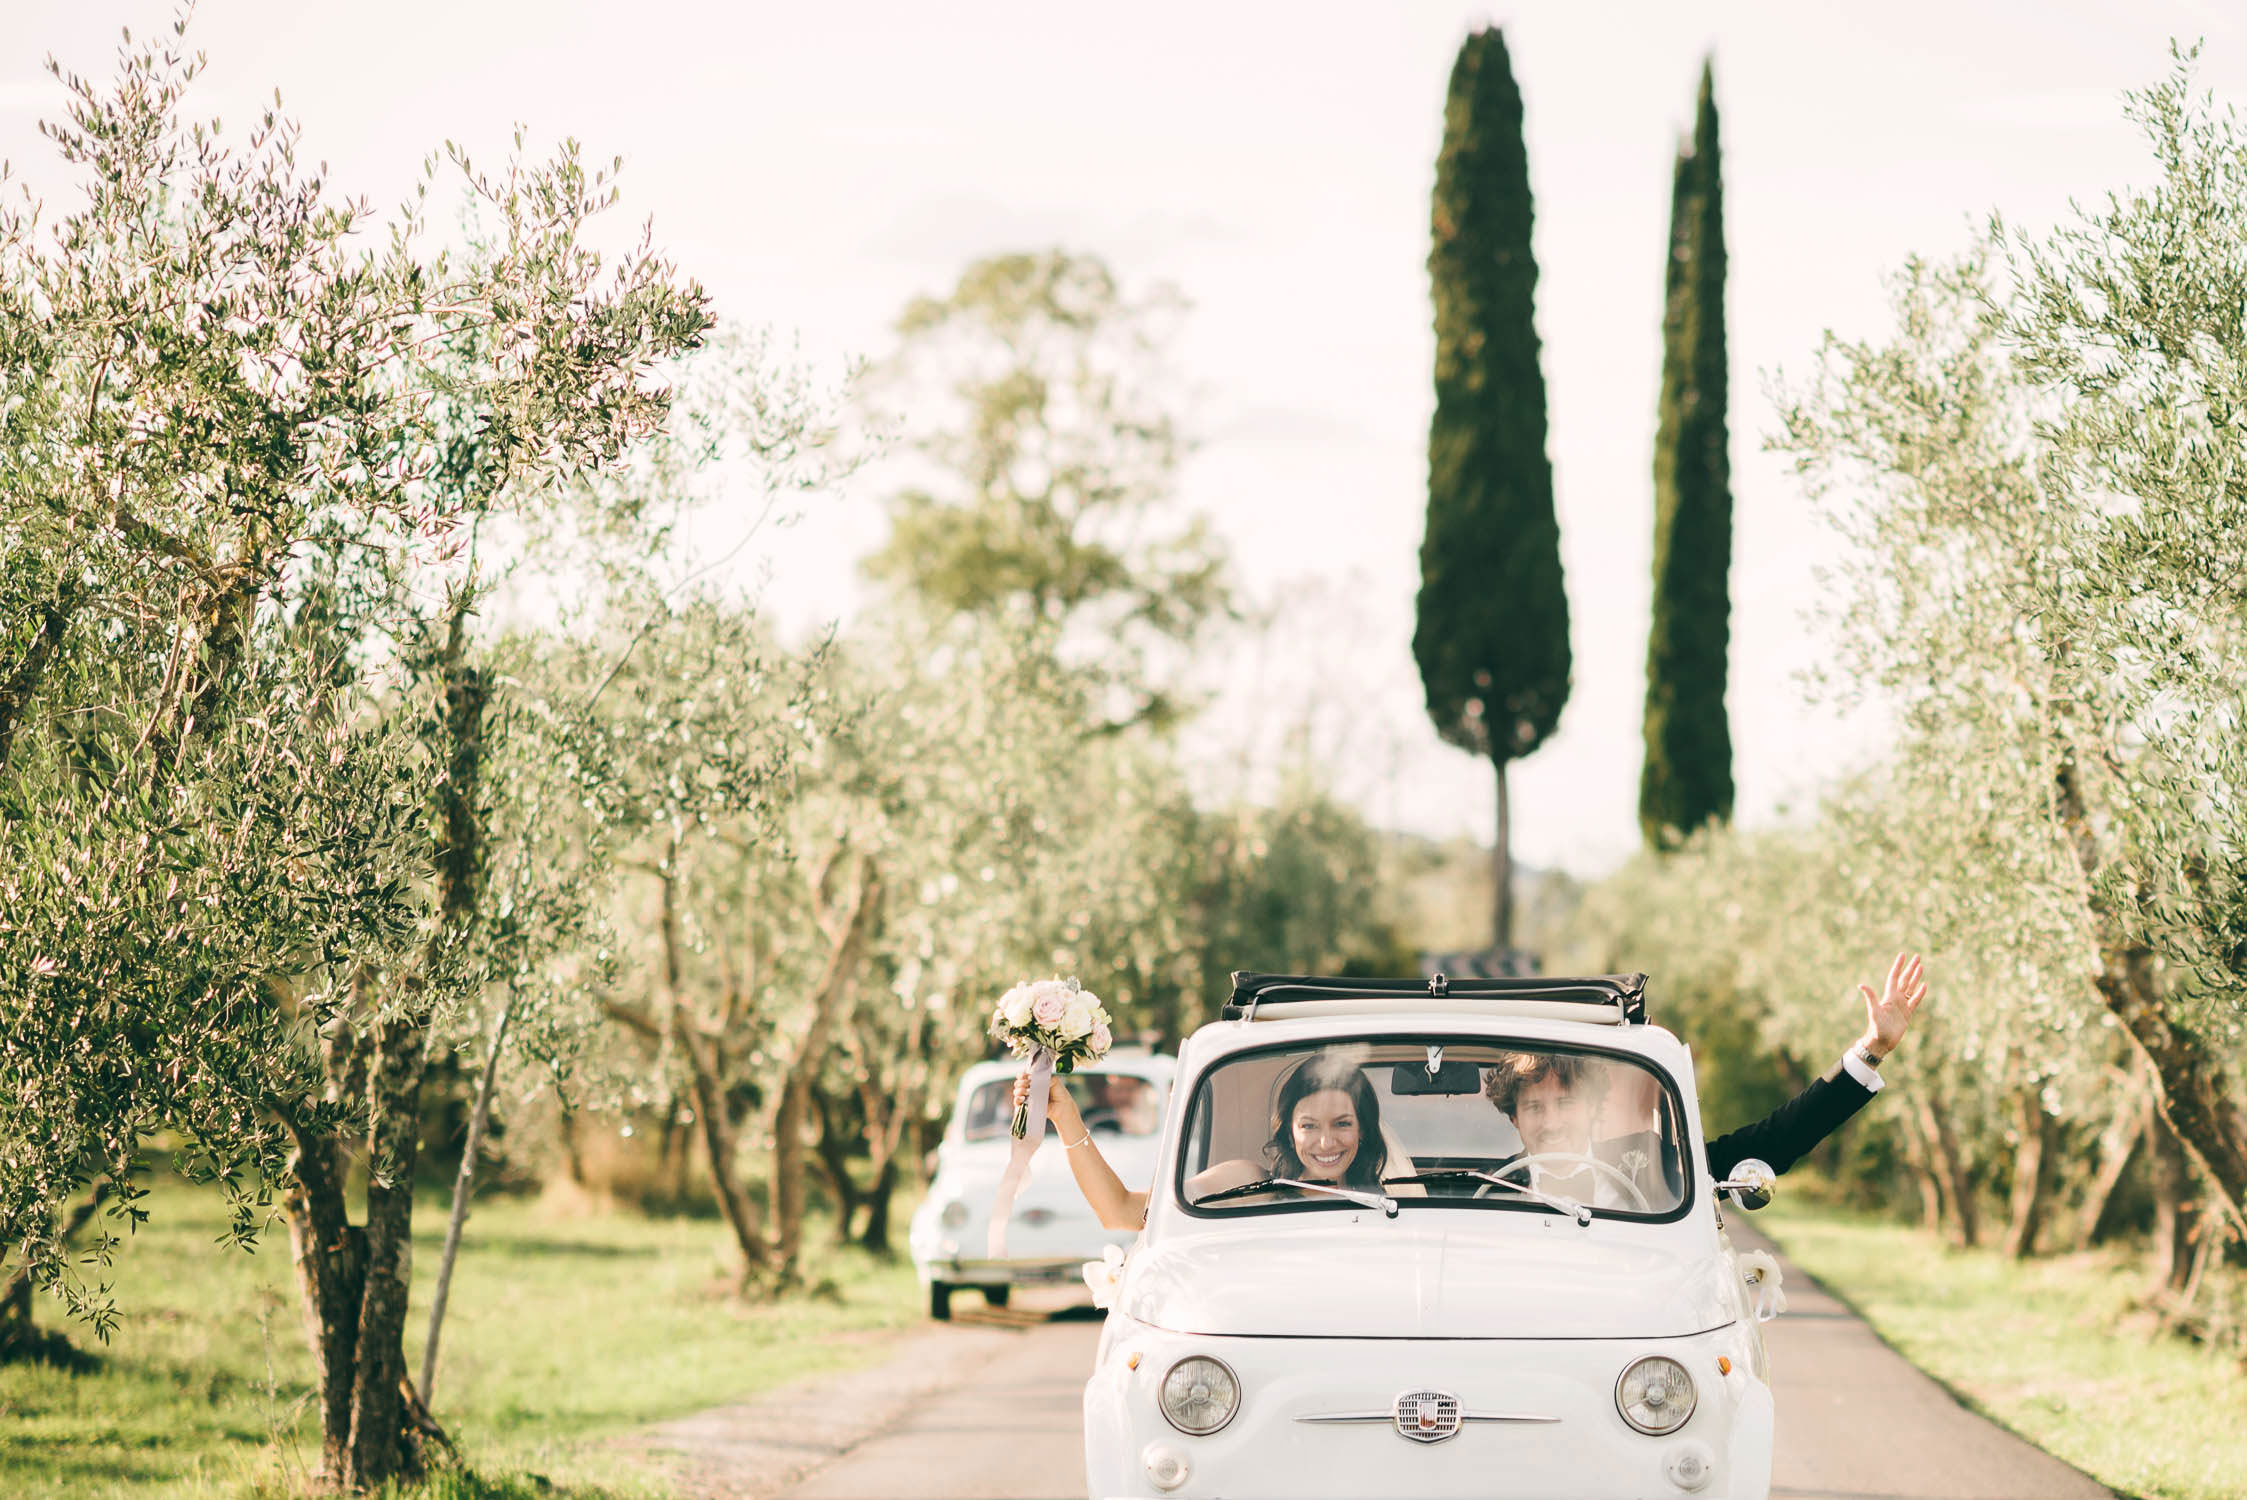 Elegant and unforgettable Florence countryside destination wedding at Villa Medicea di Lilliano